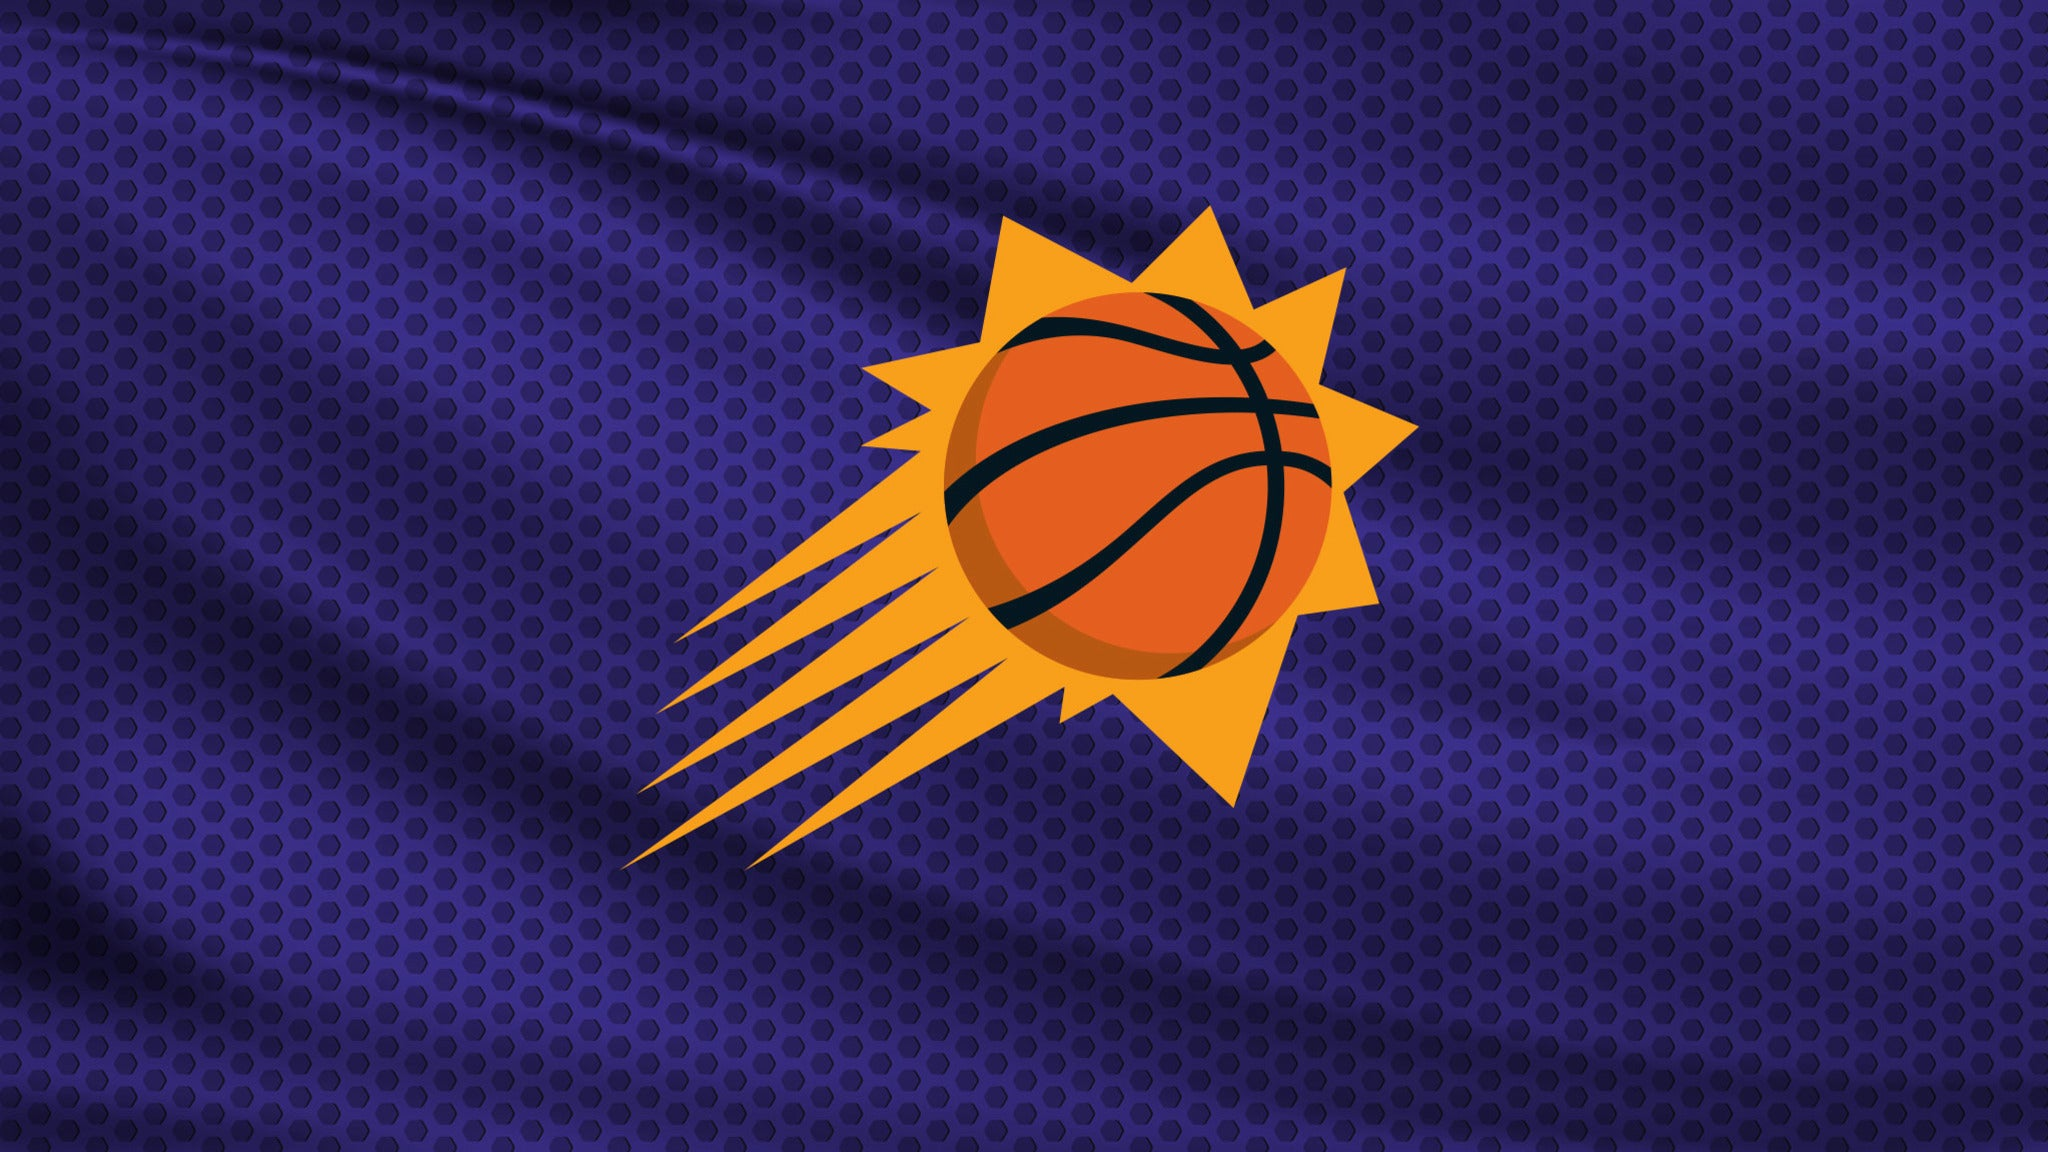 SORRY, THIS EVENT IS NO LONGER ACTIVE<br>Phoenix Suns vs. Washington Wizards - Phoenix, AZ 85004